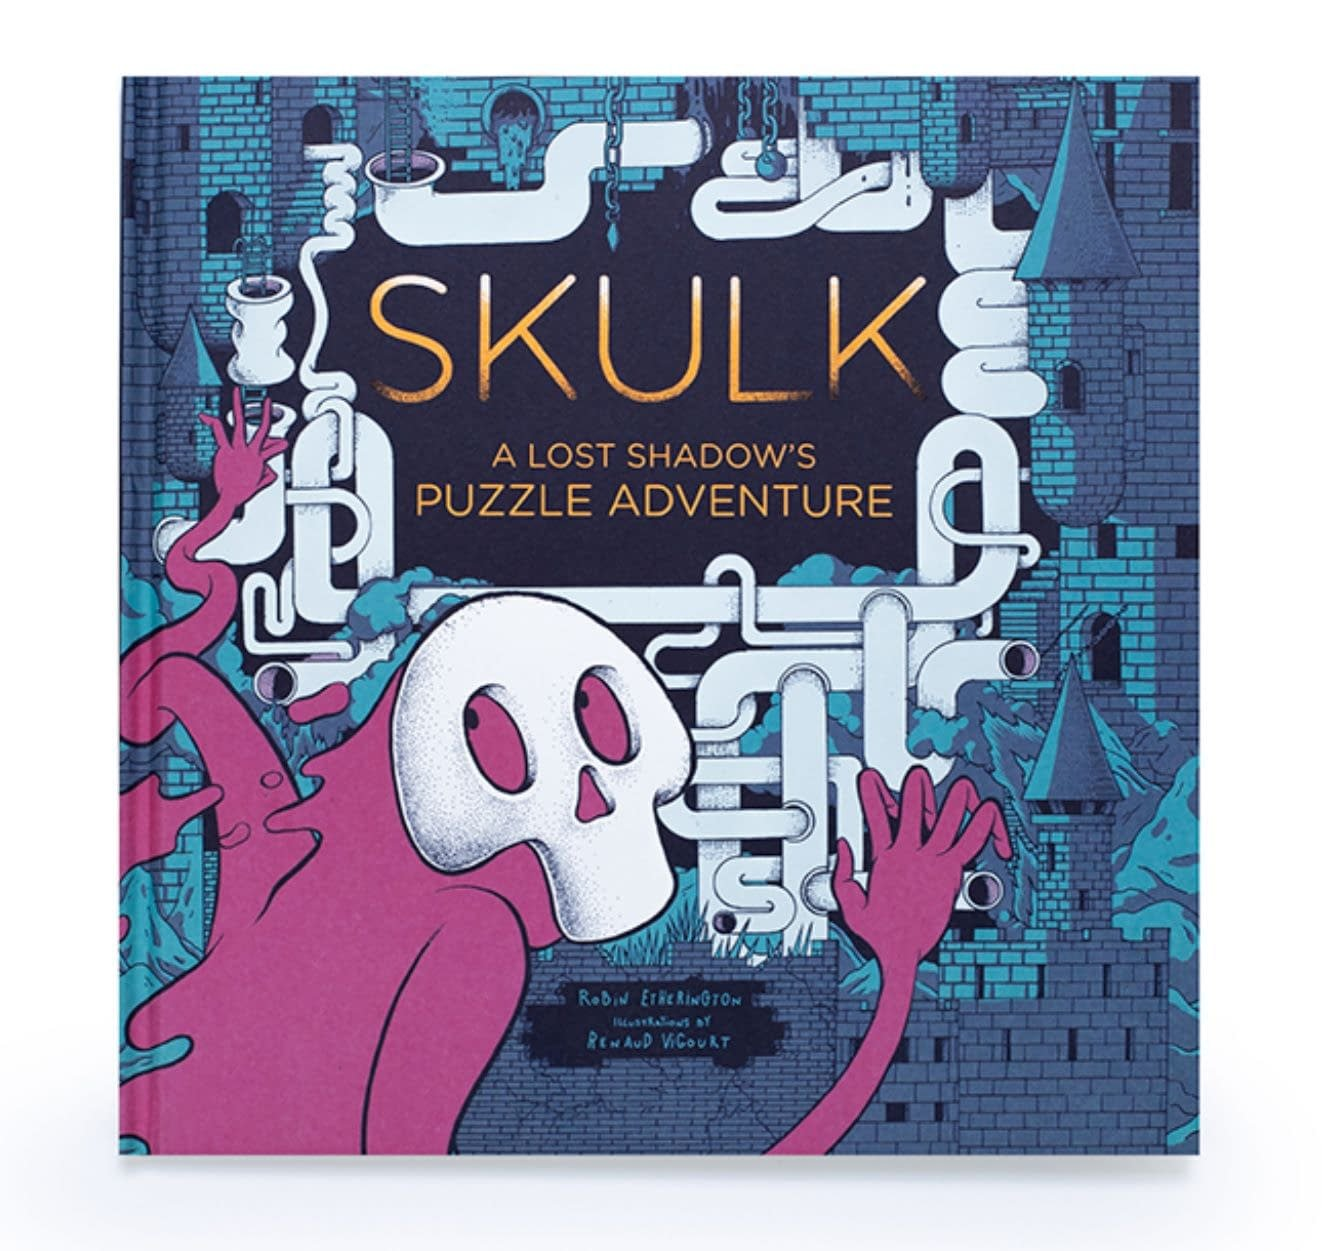 Skulk:  Lost Shadow's Puzzle Adventure by Robin Etherington